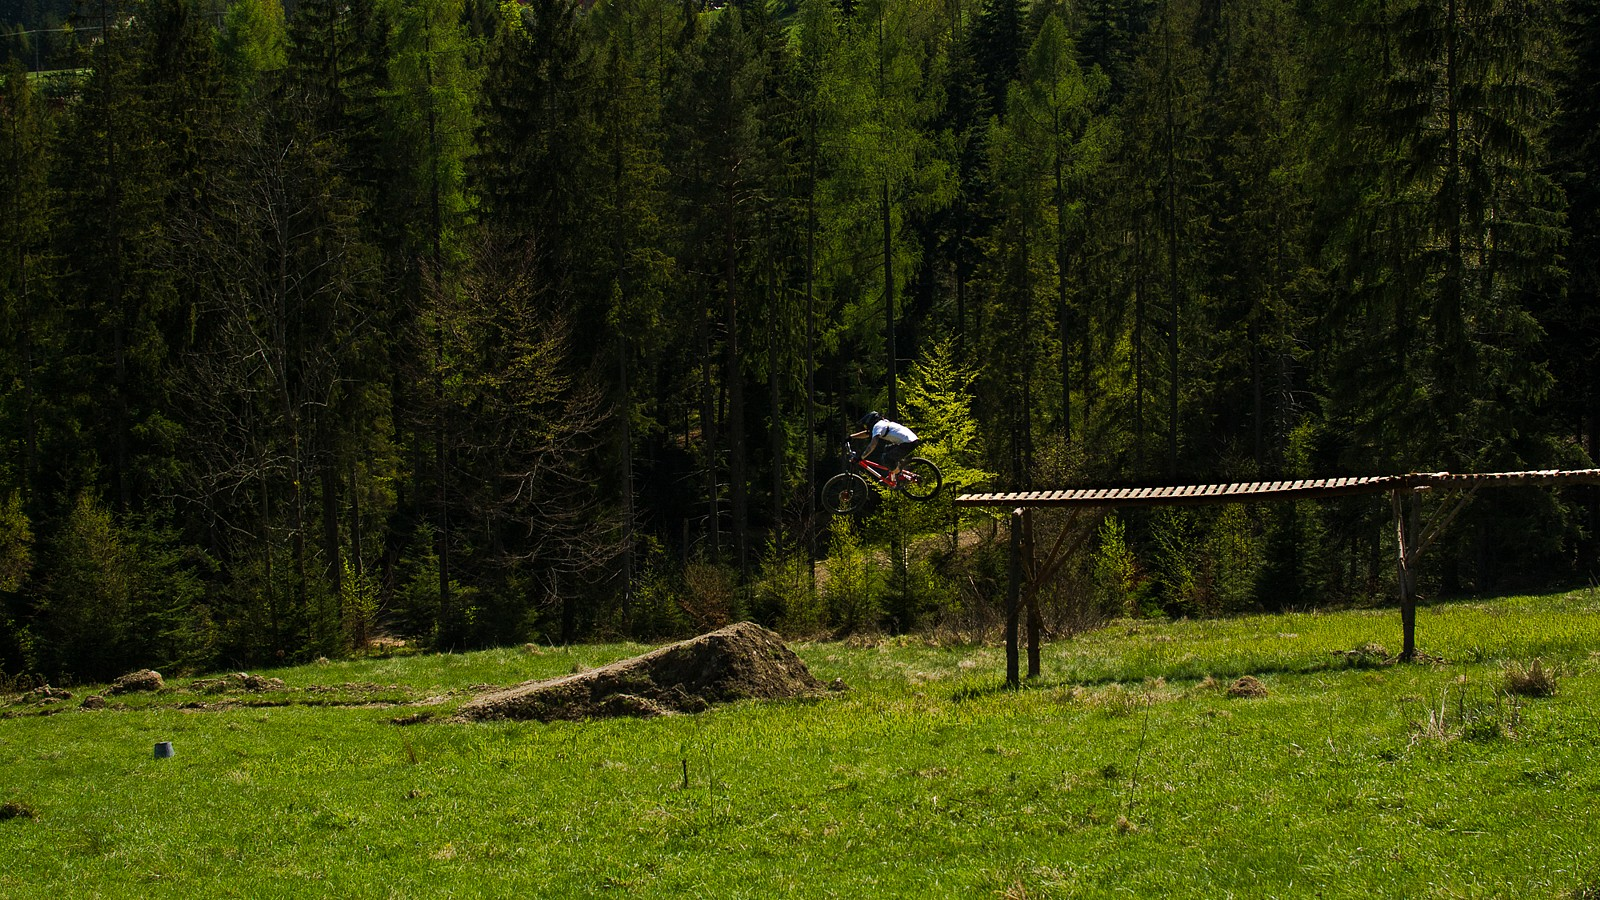 into the woods - Banan - Mountain Biking Pictures - Vital MTB